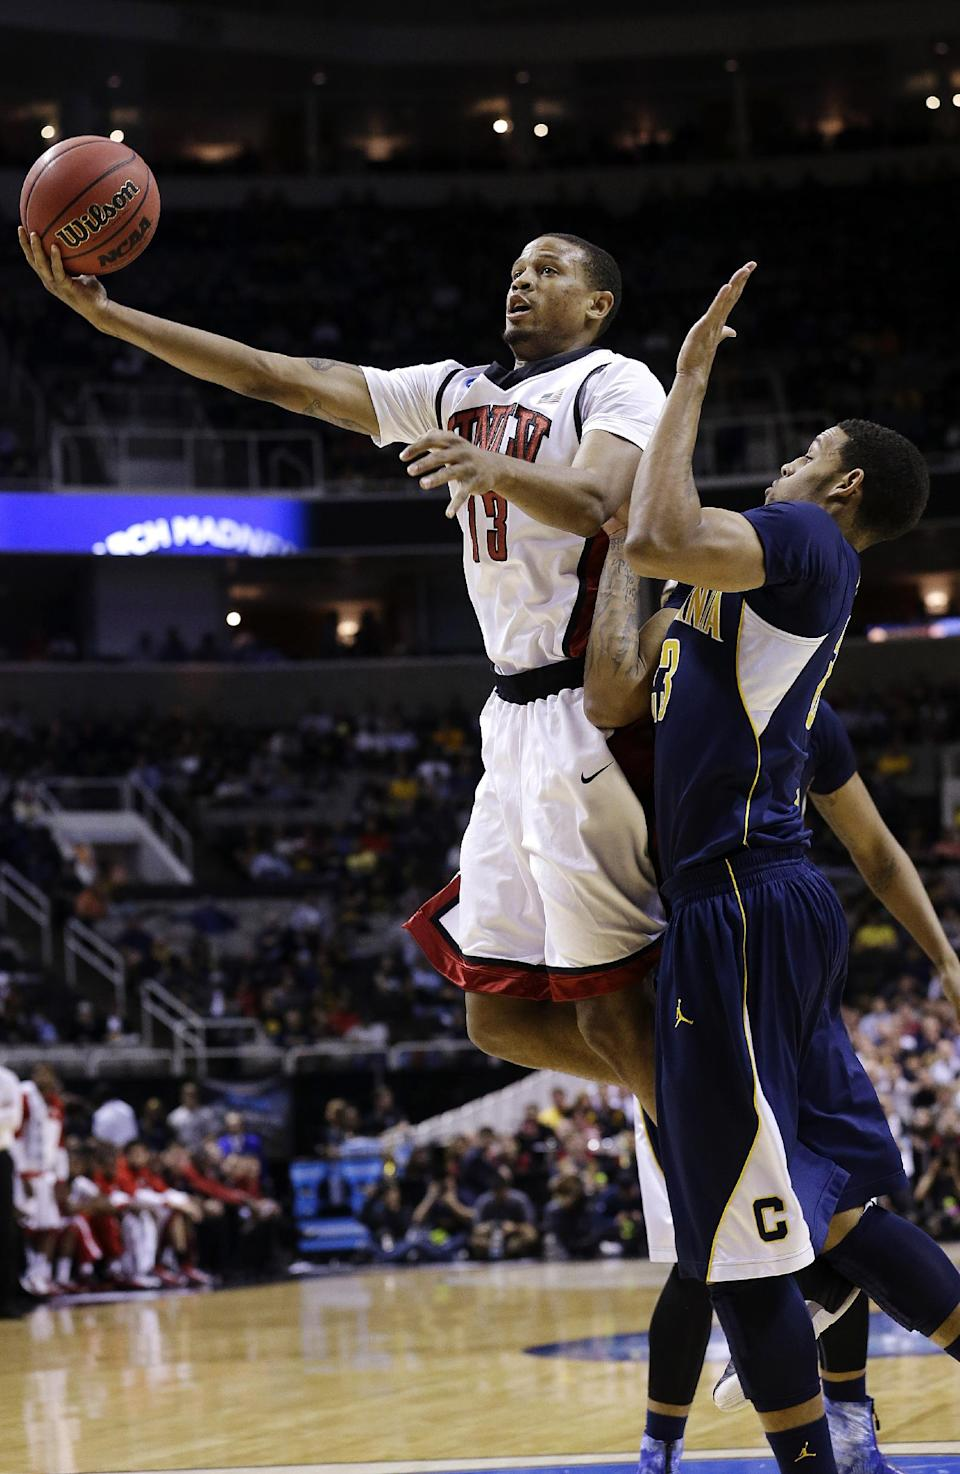 UNLV guard Bryce Dejean-Jones (13) shoots against California guard Allen Crabbe (23) during the first half of a second-round game in the NCAA college basketball tournament in San Jose, Calif., Thursday, March 21, 2013. (AP Photo/Jeff Chiu)